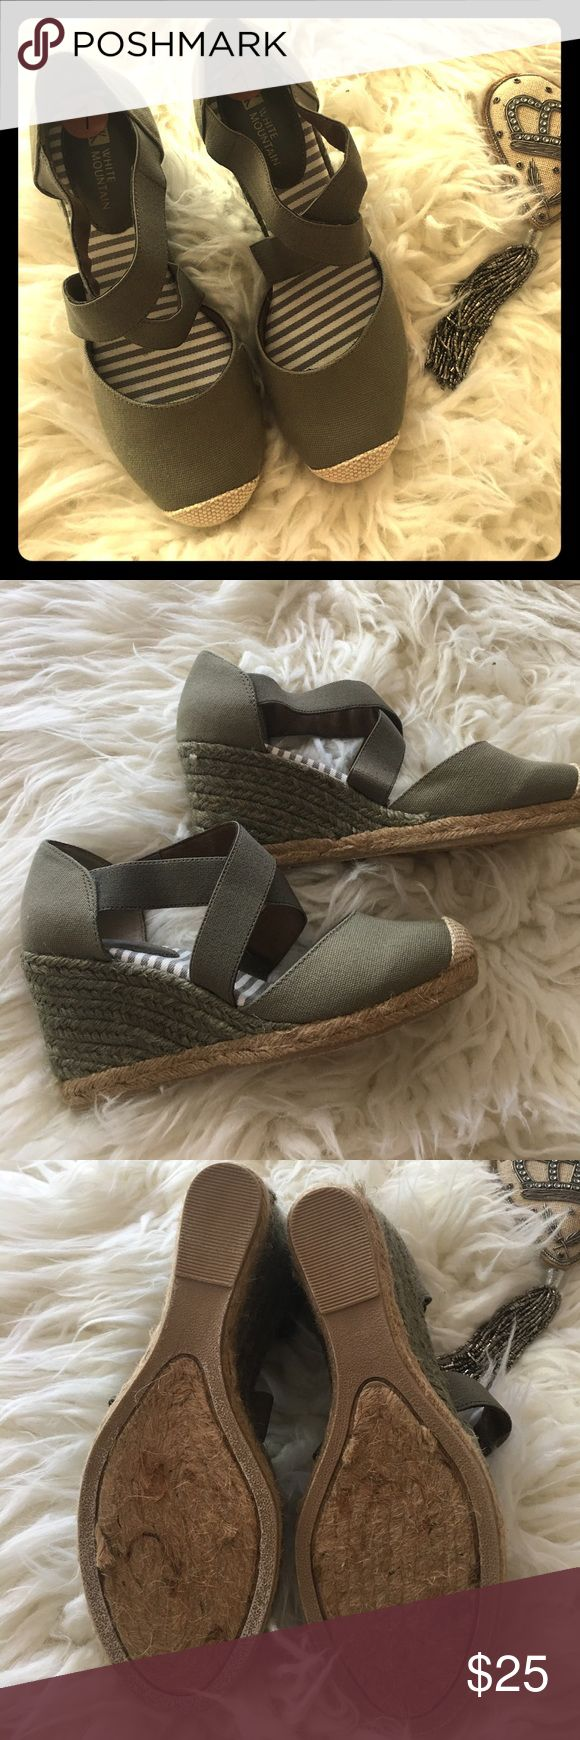 White Mtn Army Green Wedges Sz 7 White Mtn Army Green Wedges Sz 7 White Mountain Shoes Wedges